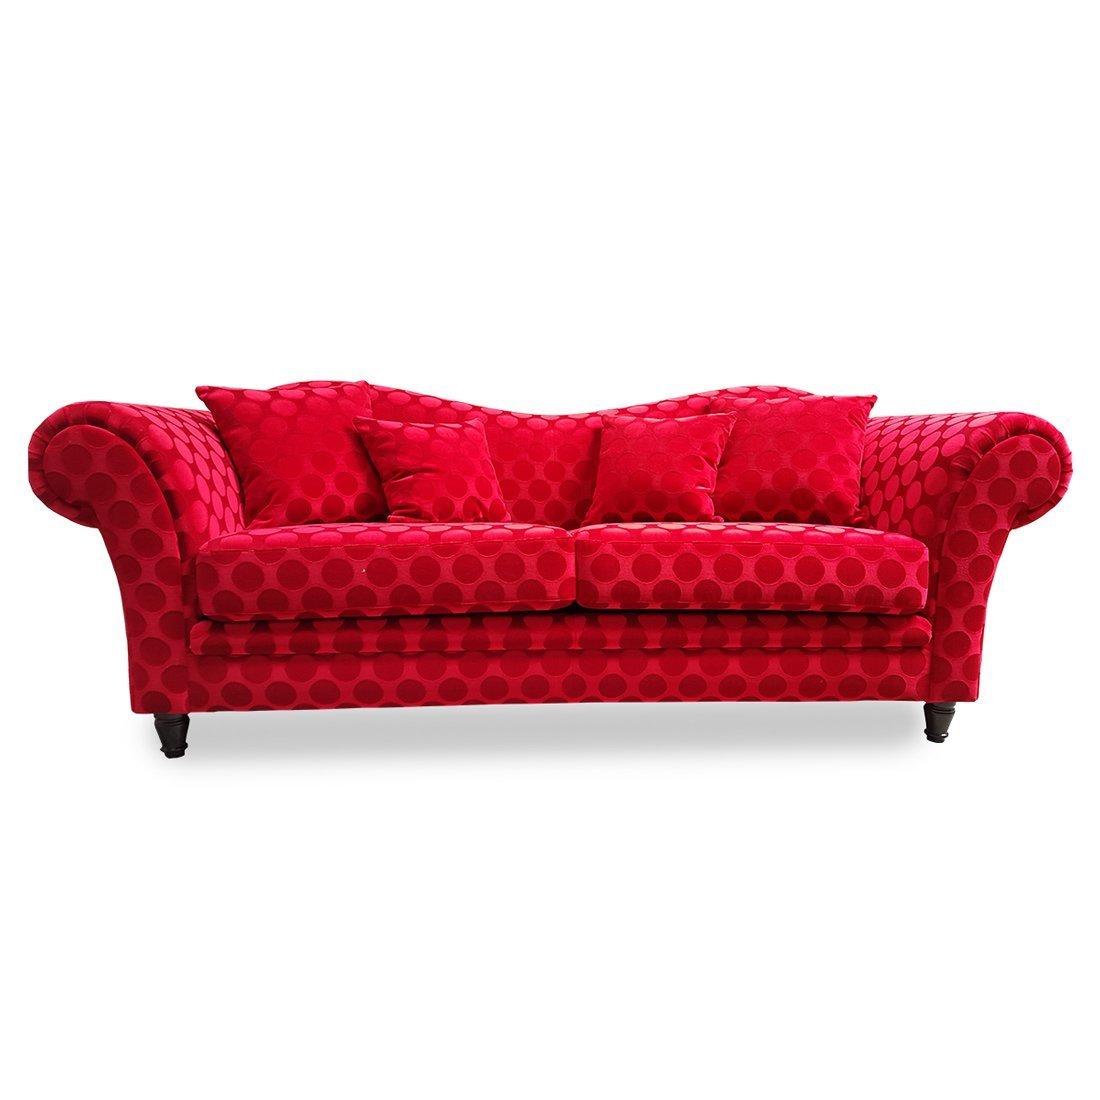 Canap convertible rouge design meubles et atmosph re - Canape rouge convertible ...